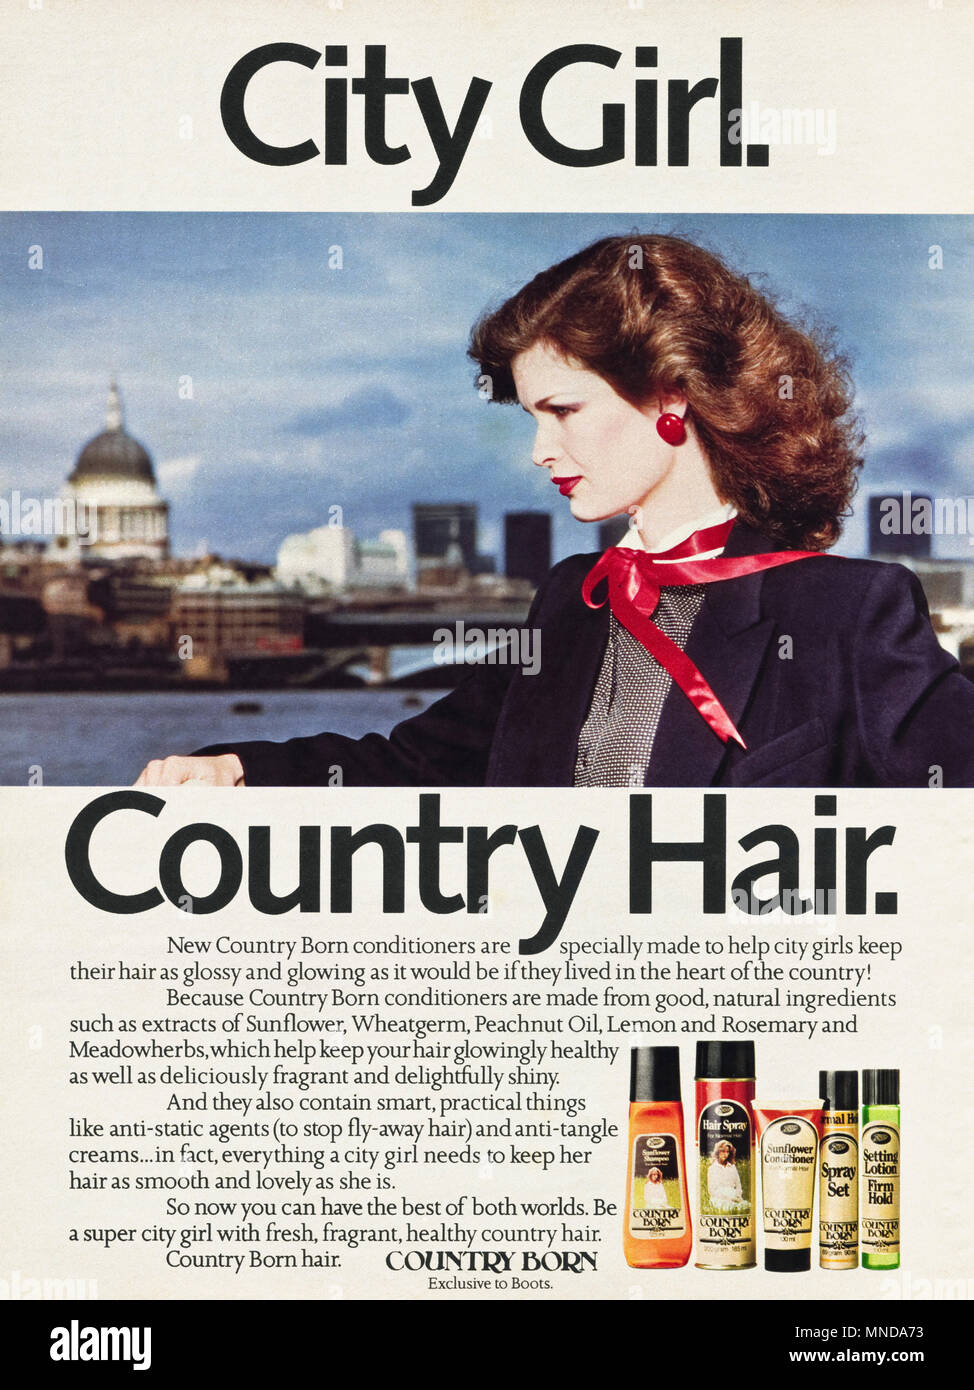 1980s original old vintage advertisement advertising Country Born shampoo & conditioner advert in English magazine circa 1980 - Stock Image